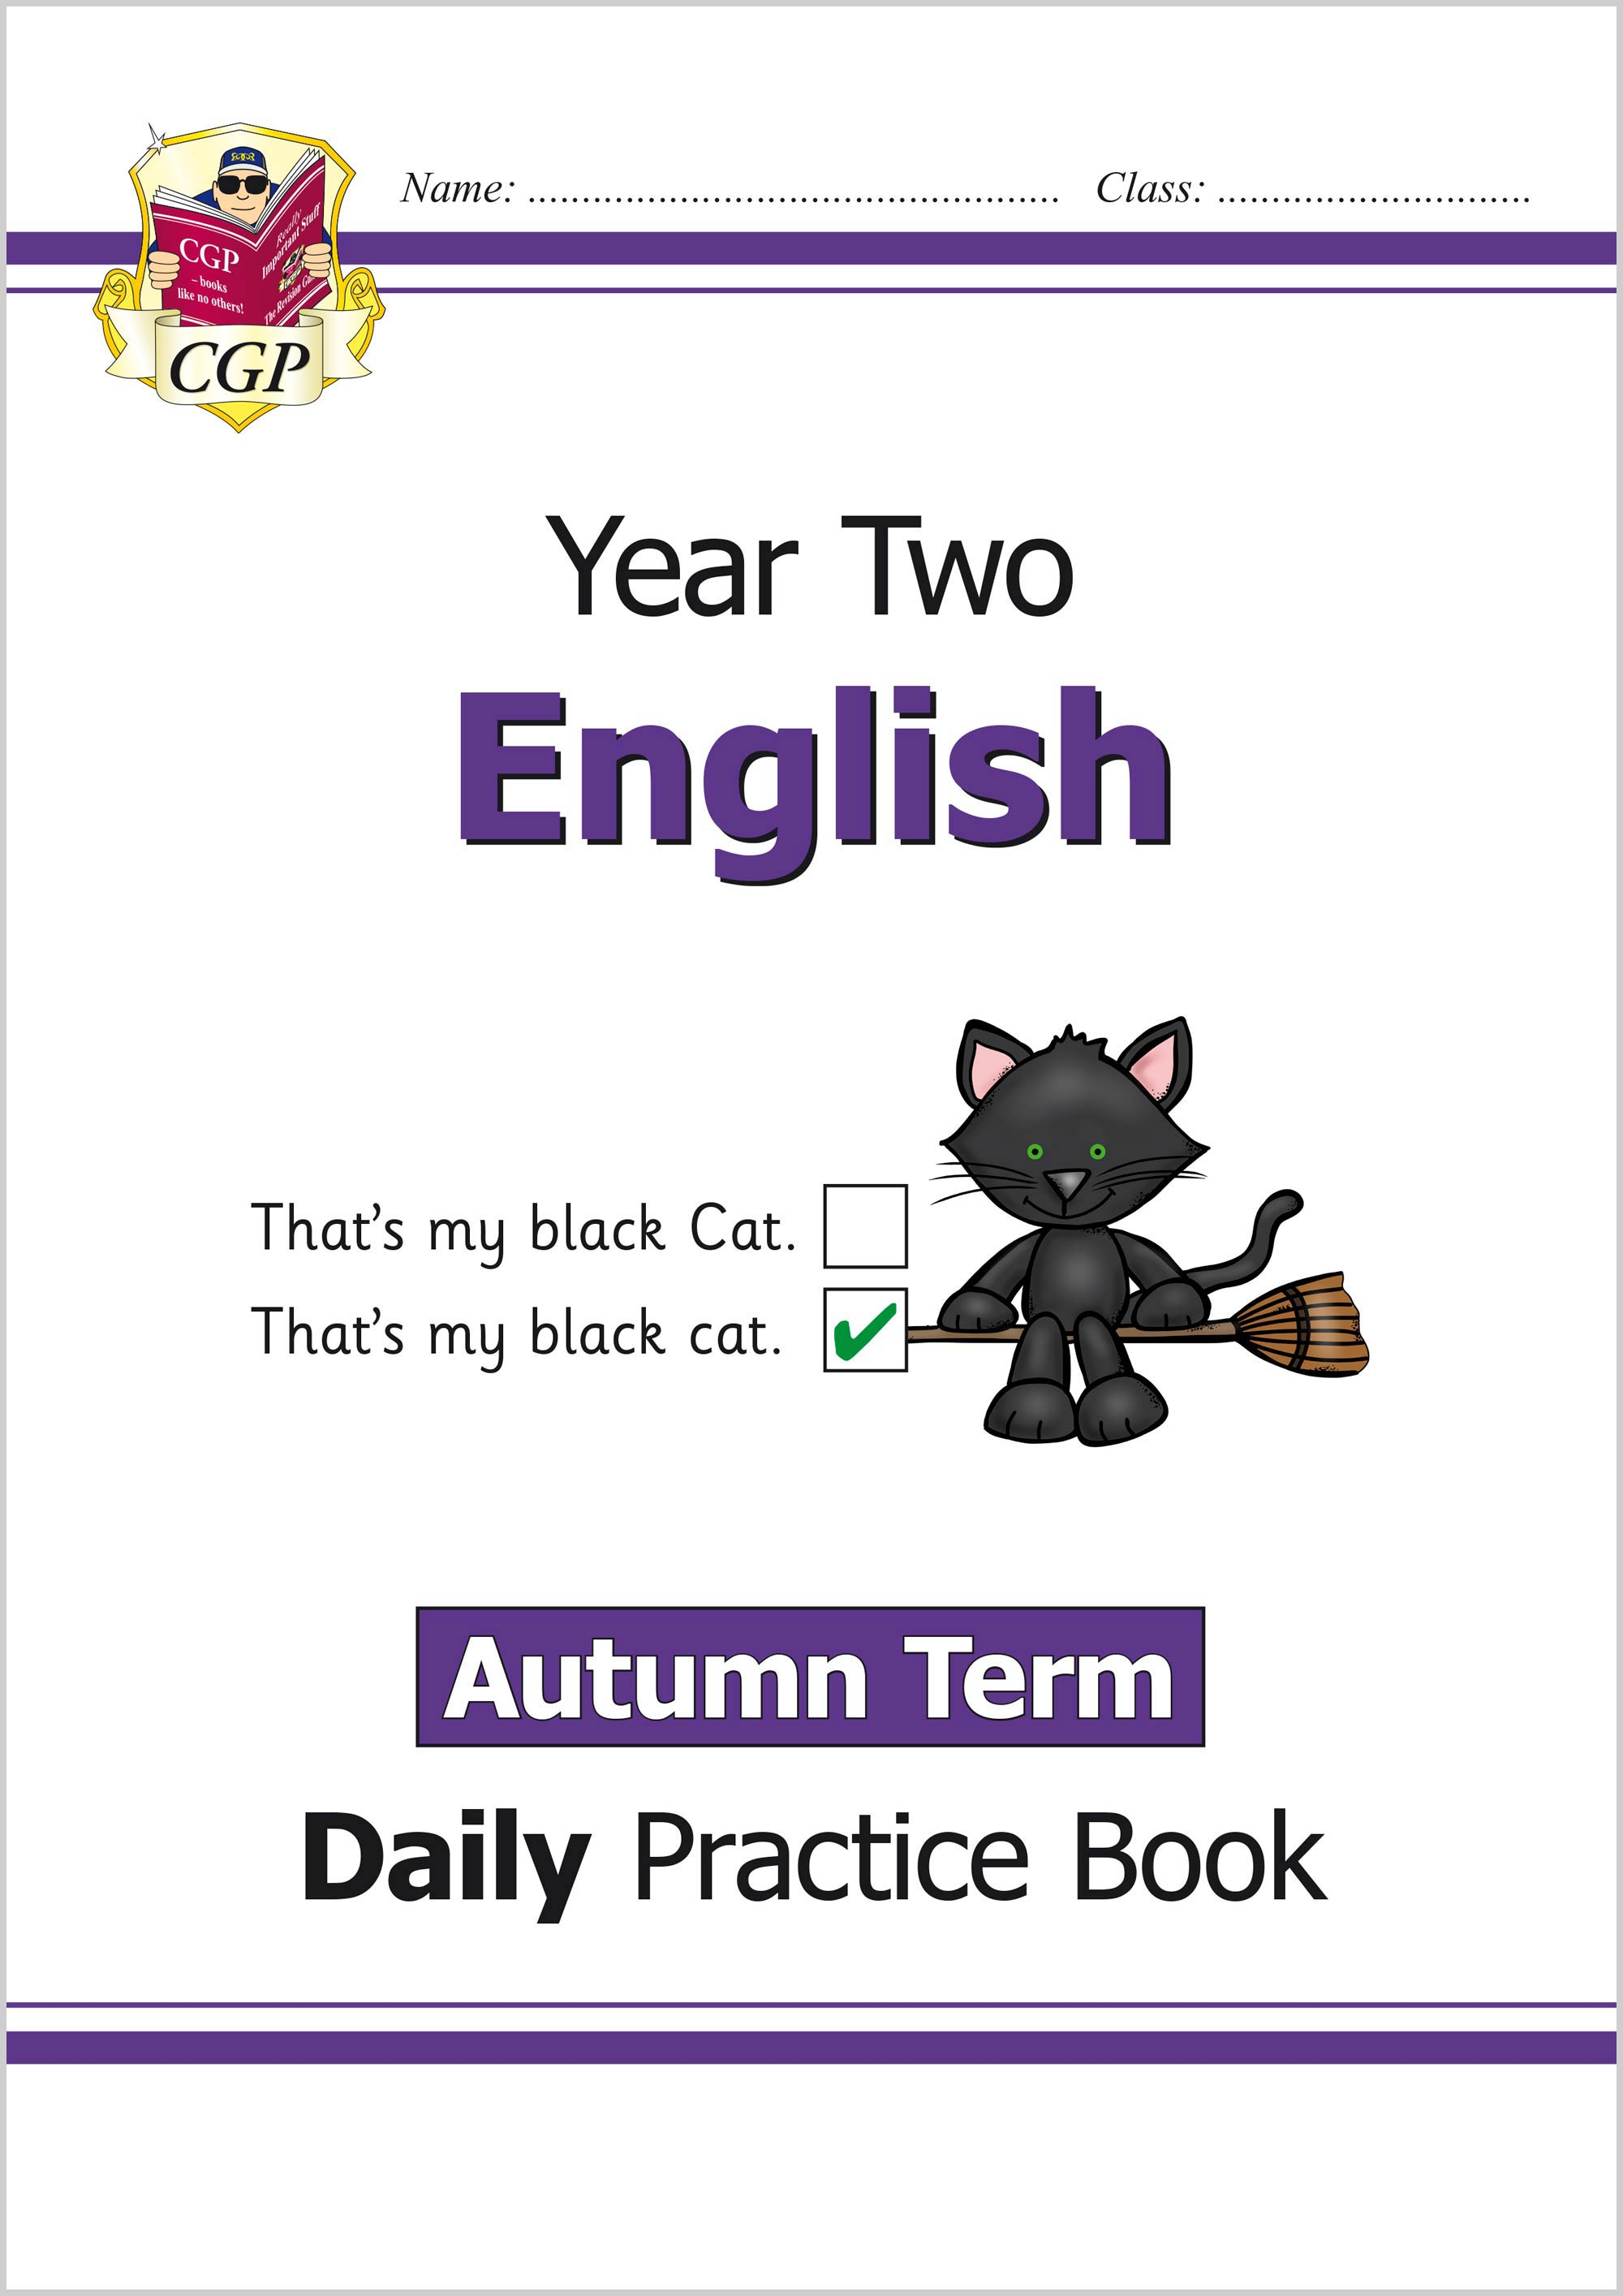 E2WAU11 - New KS1 English Daily Practice Book: Year 2 - Autumn Term